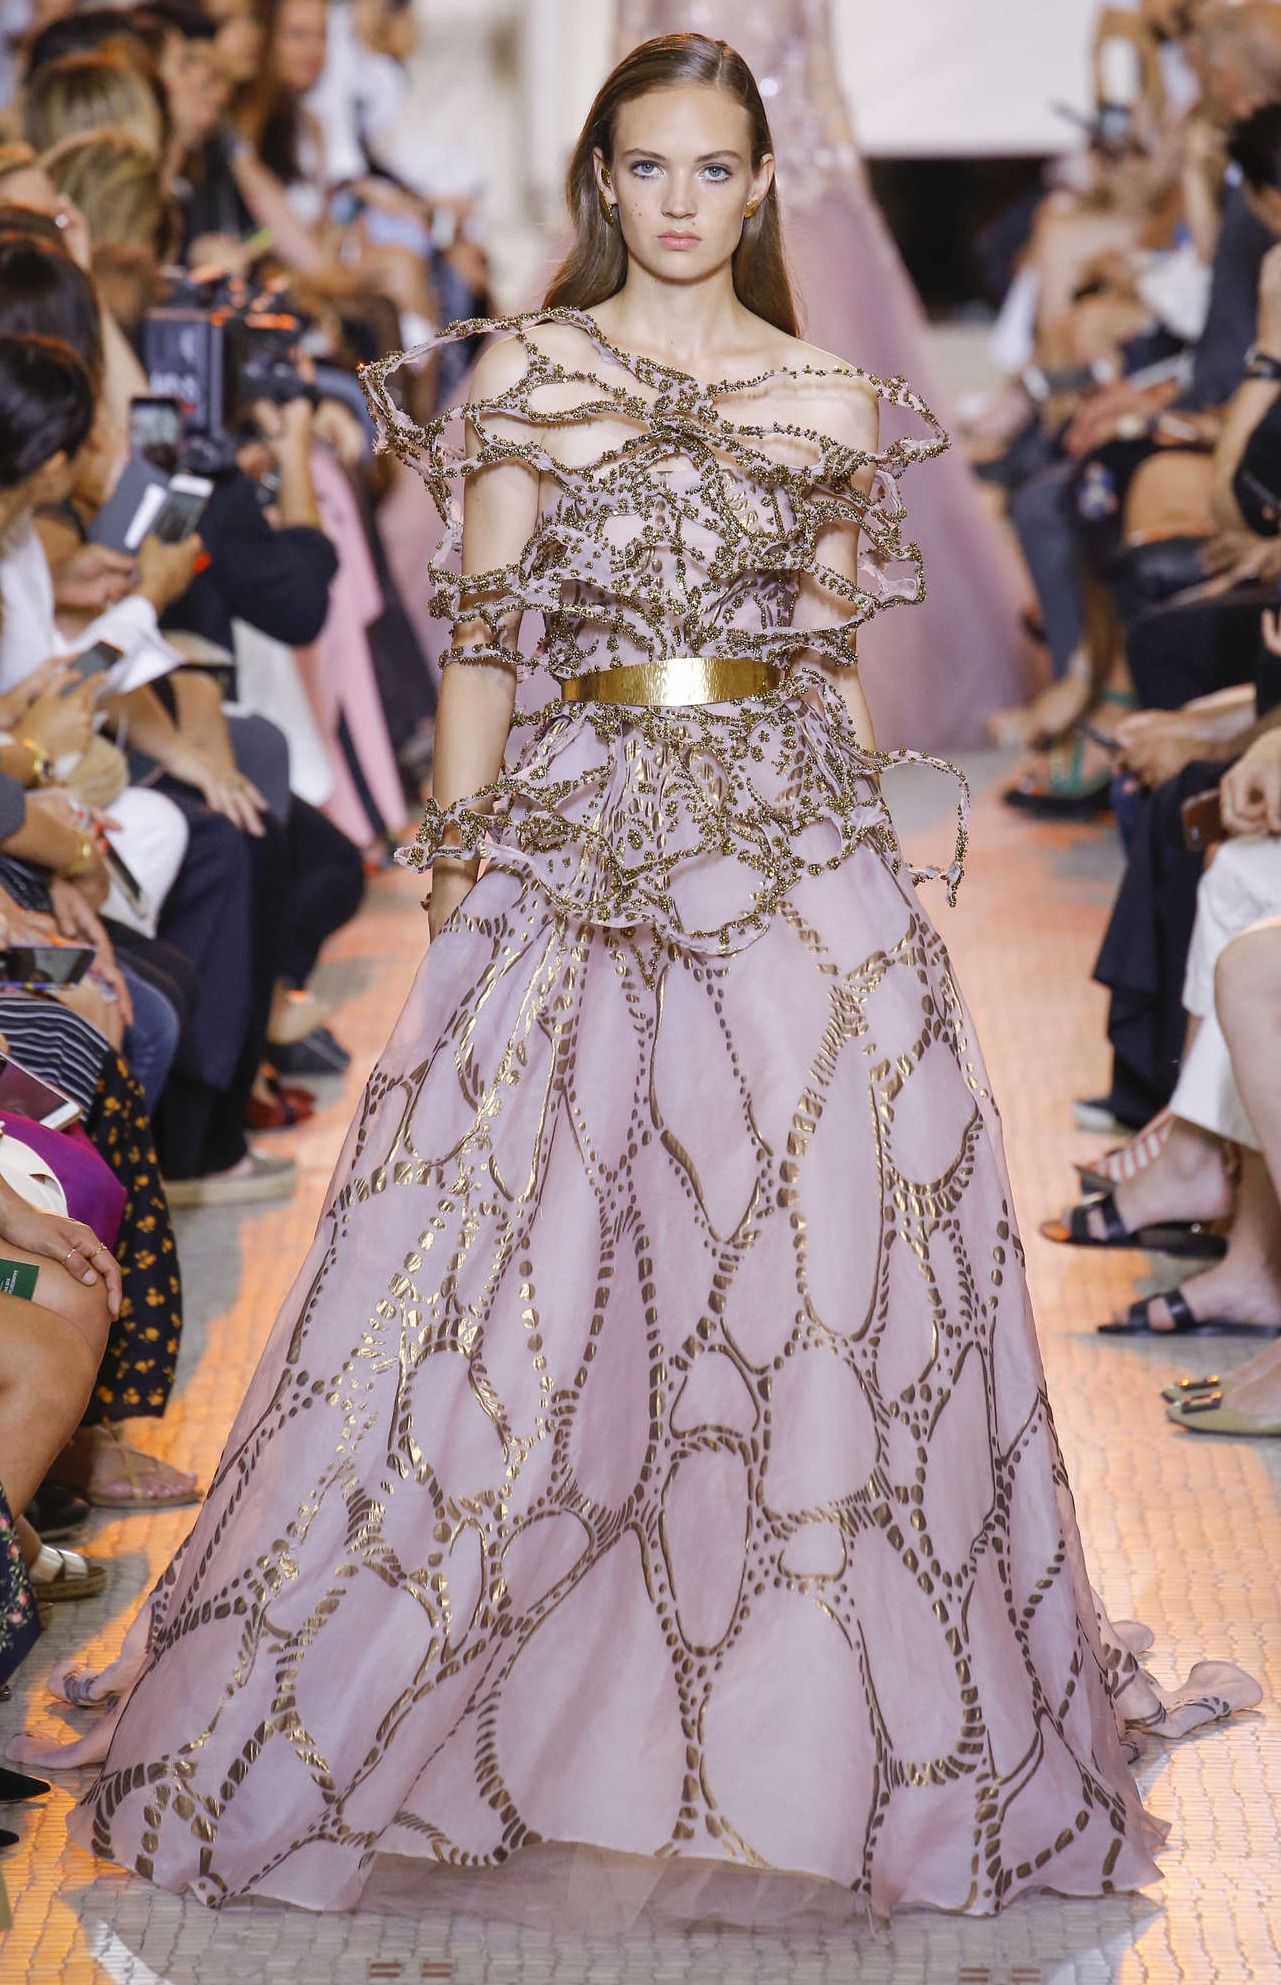 Elie Saab Haute Couture Fall Winter 2018